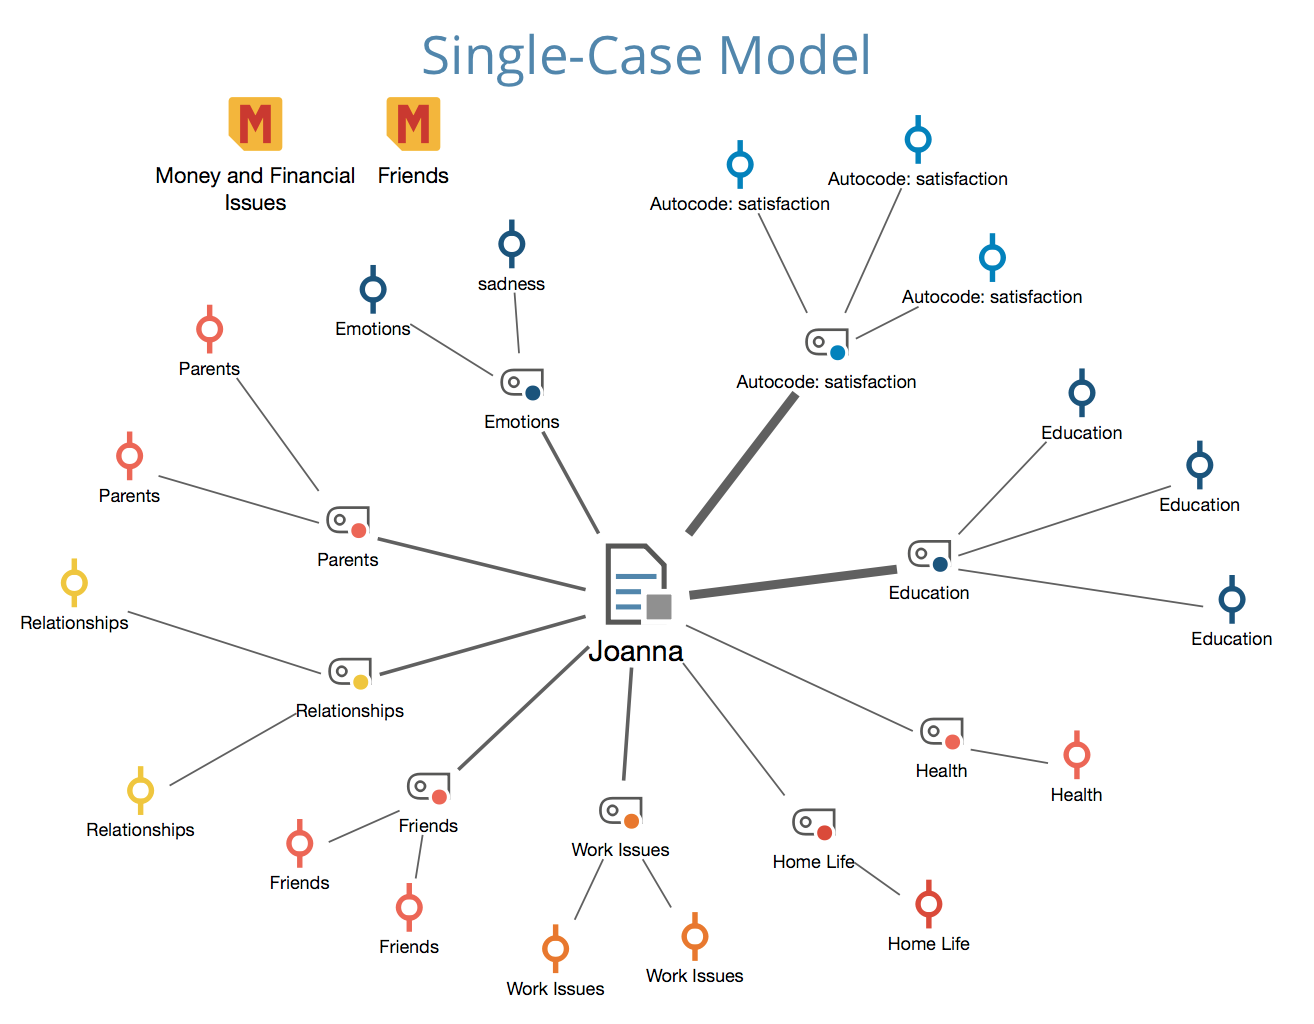 An example of the Single-Case Model